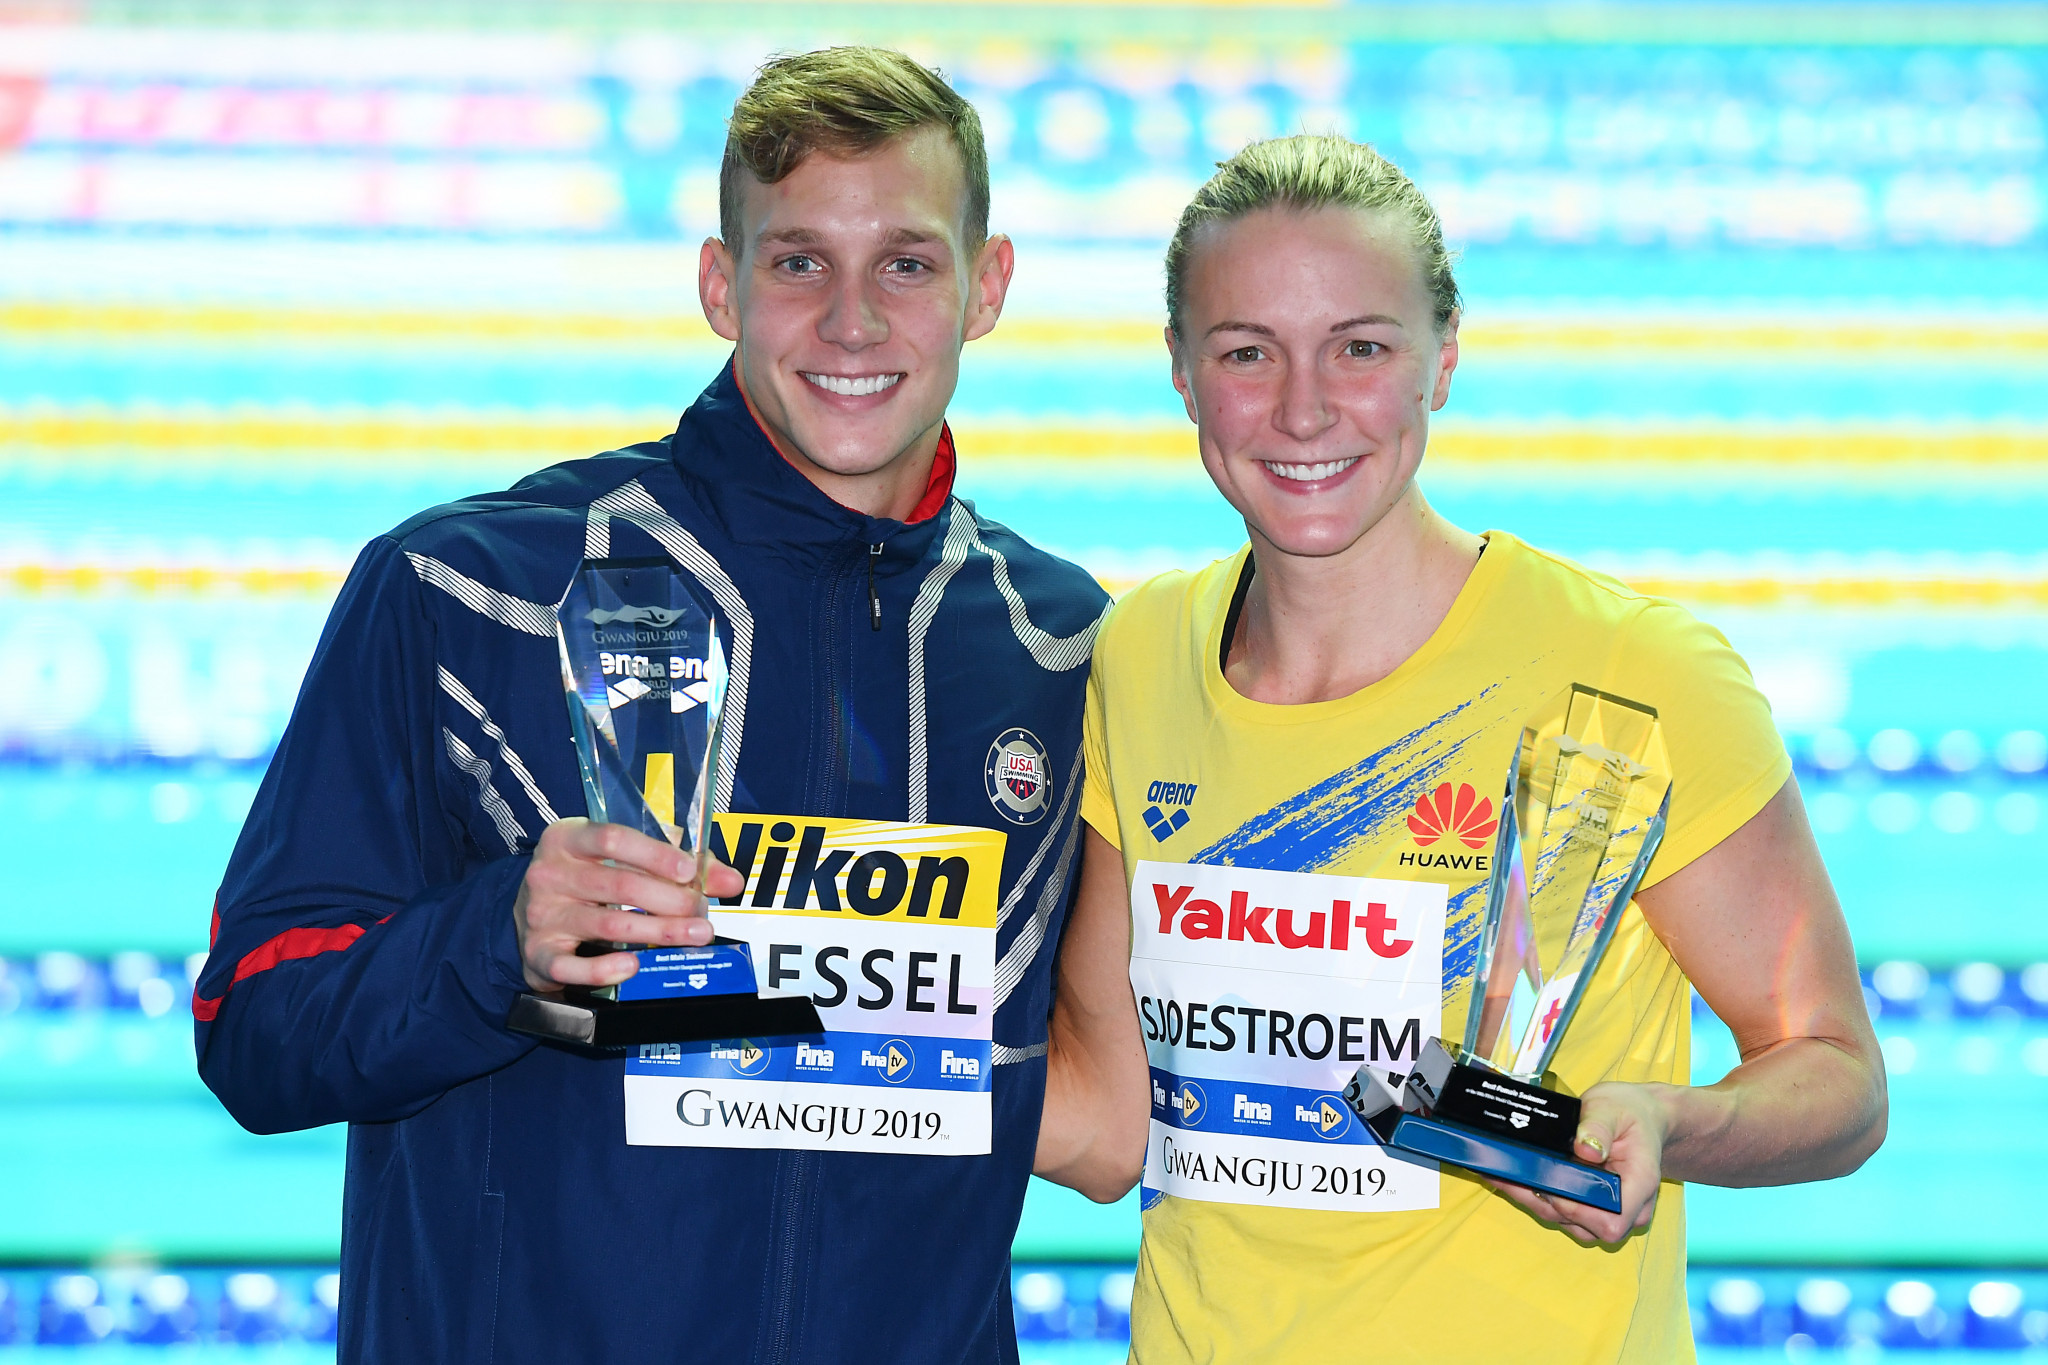 Caeleb Dressel and Sarah Sjostrom, pictured last year with their trophies, retained them in swimming categories ©Getty Images